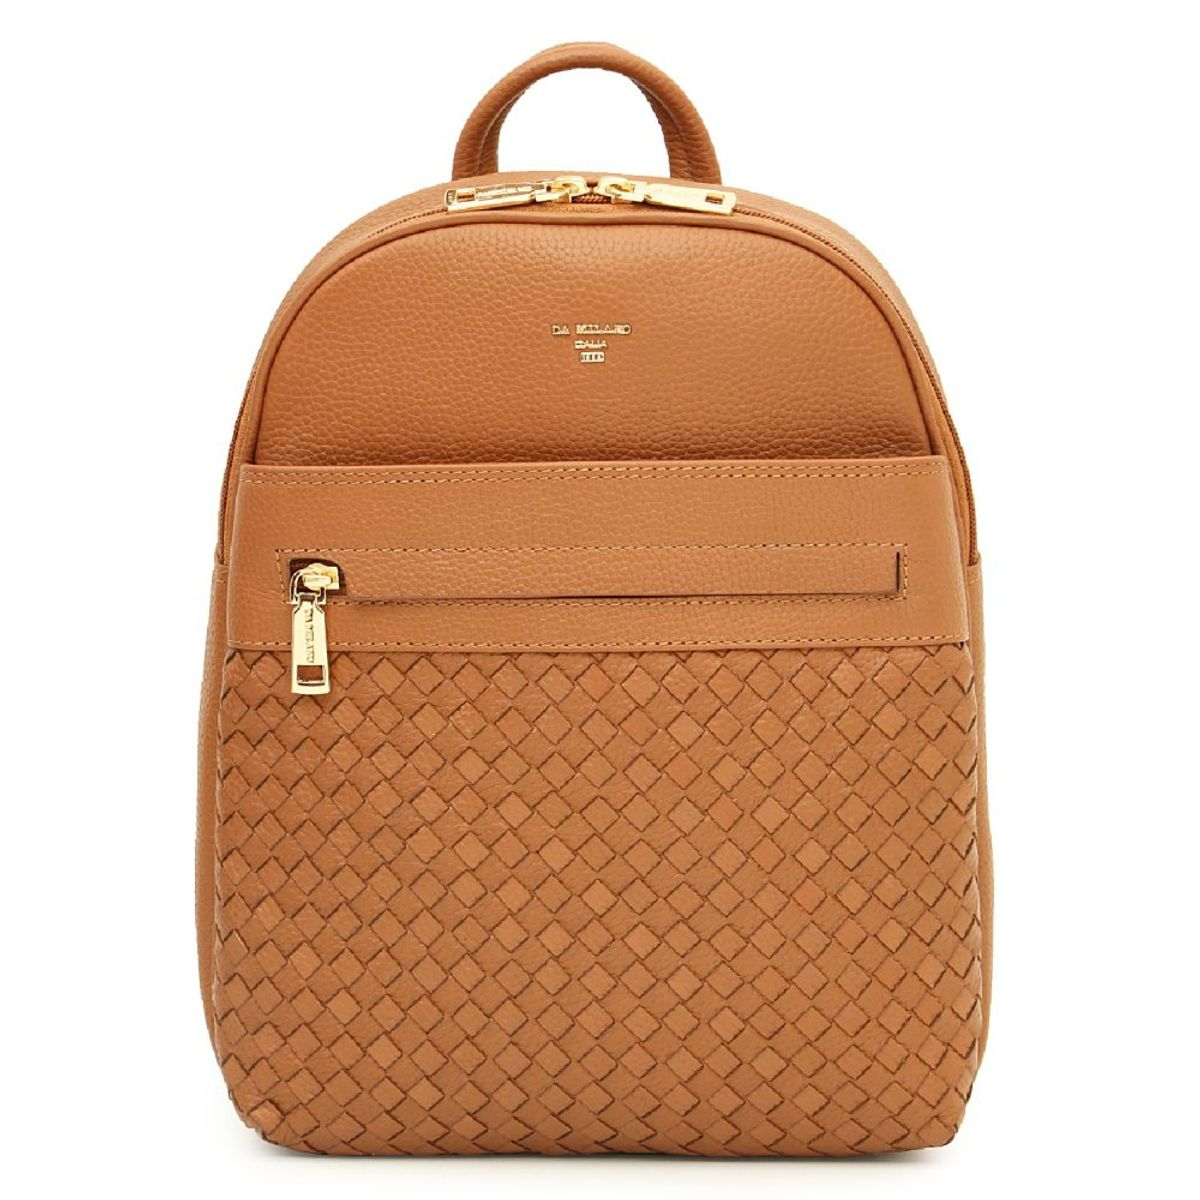 zoom Da Milano Cognac BackPack 936acd7cc9074